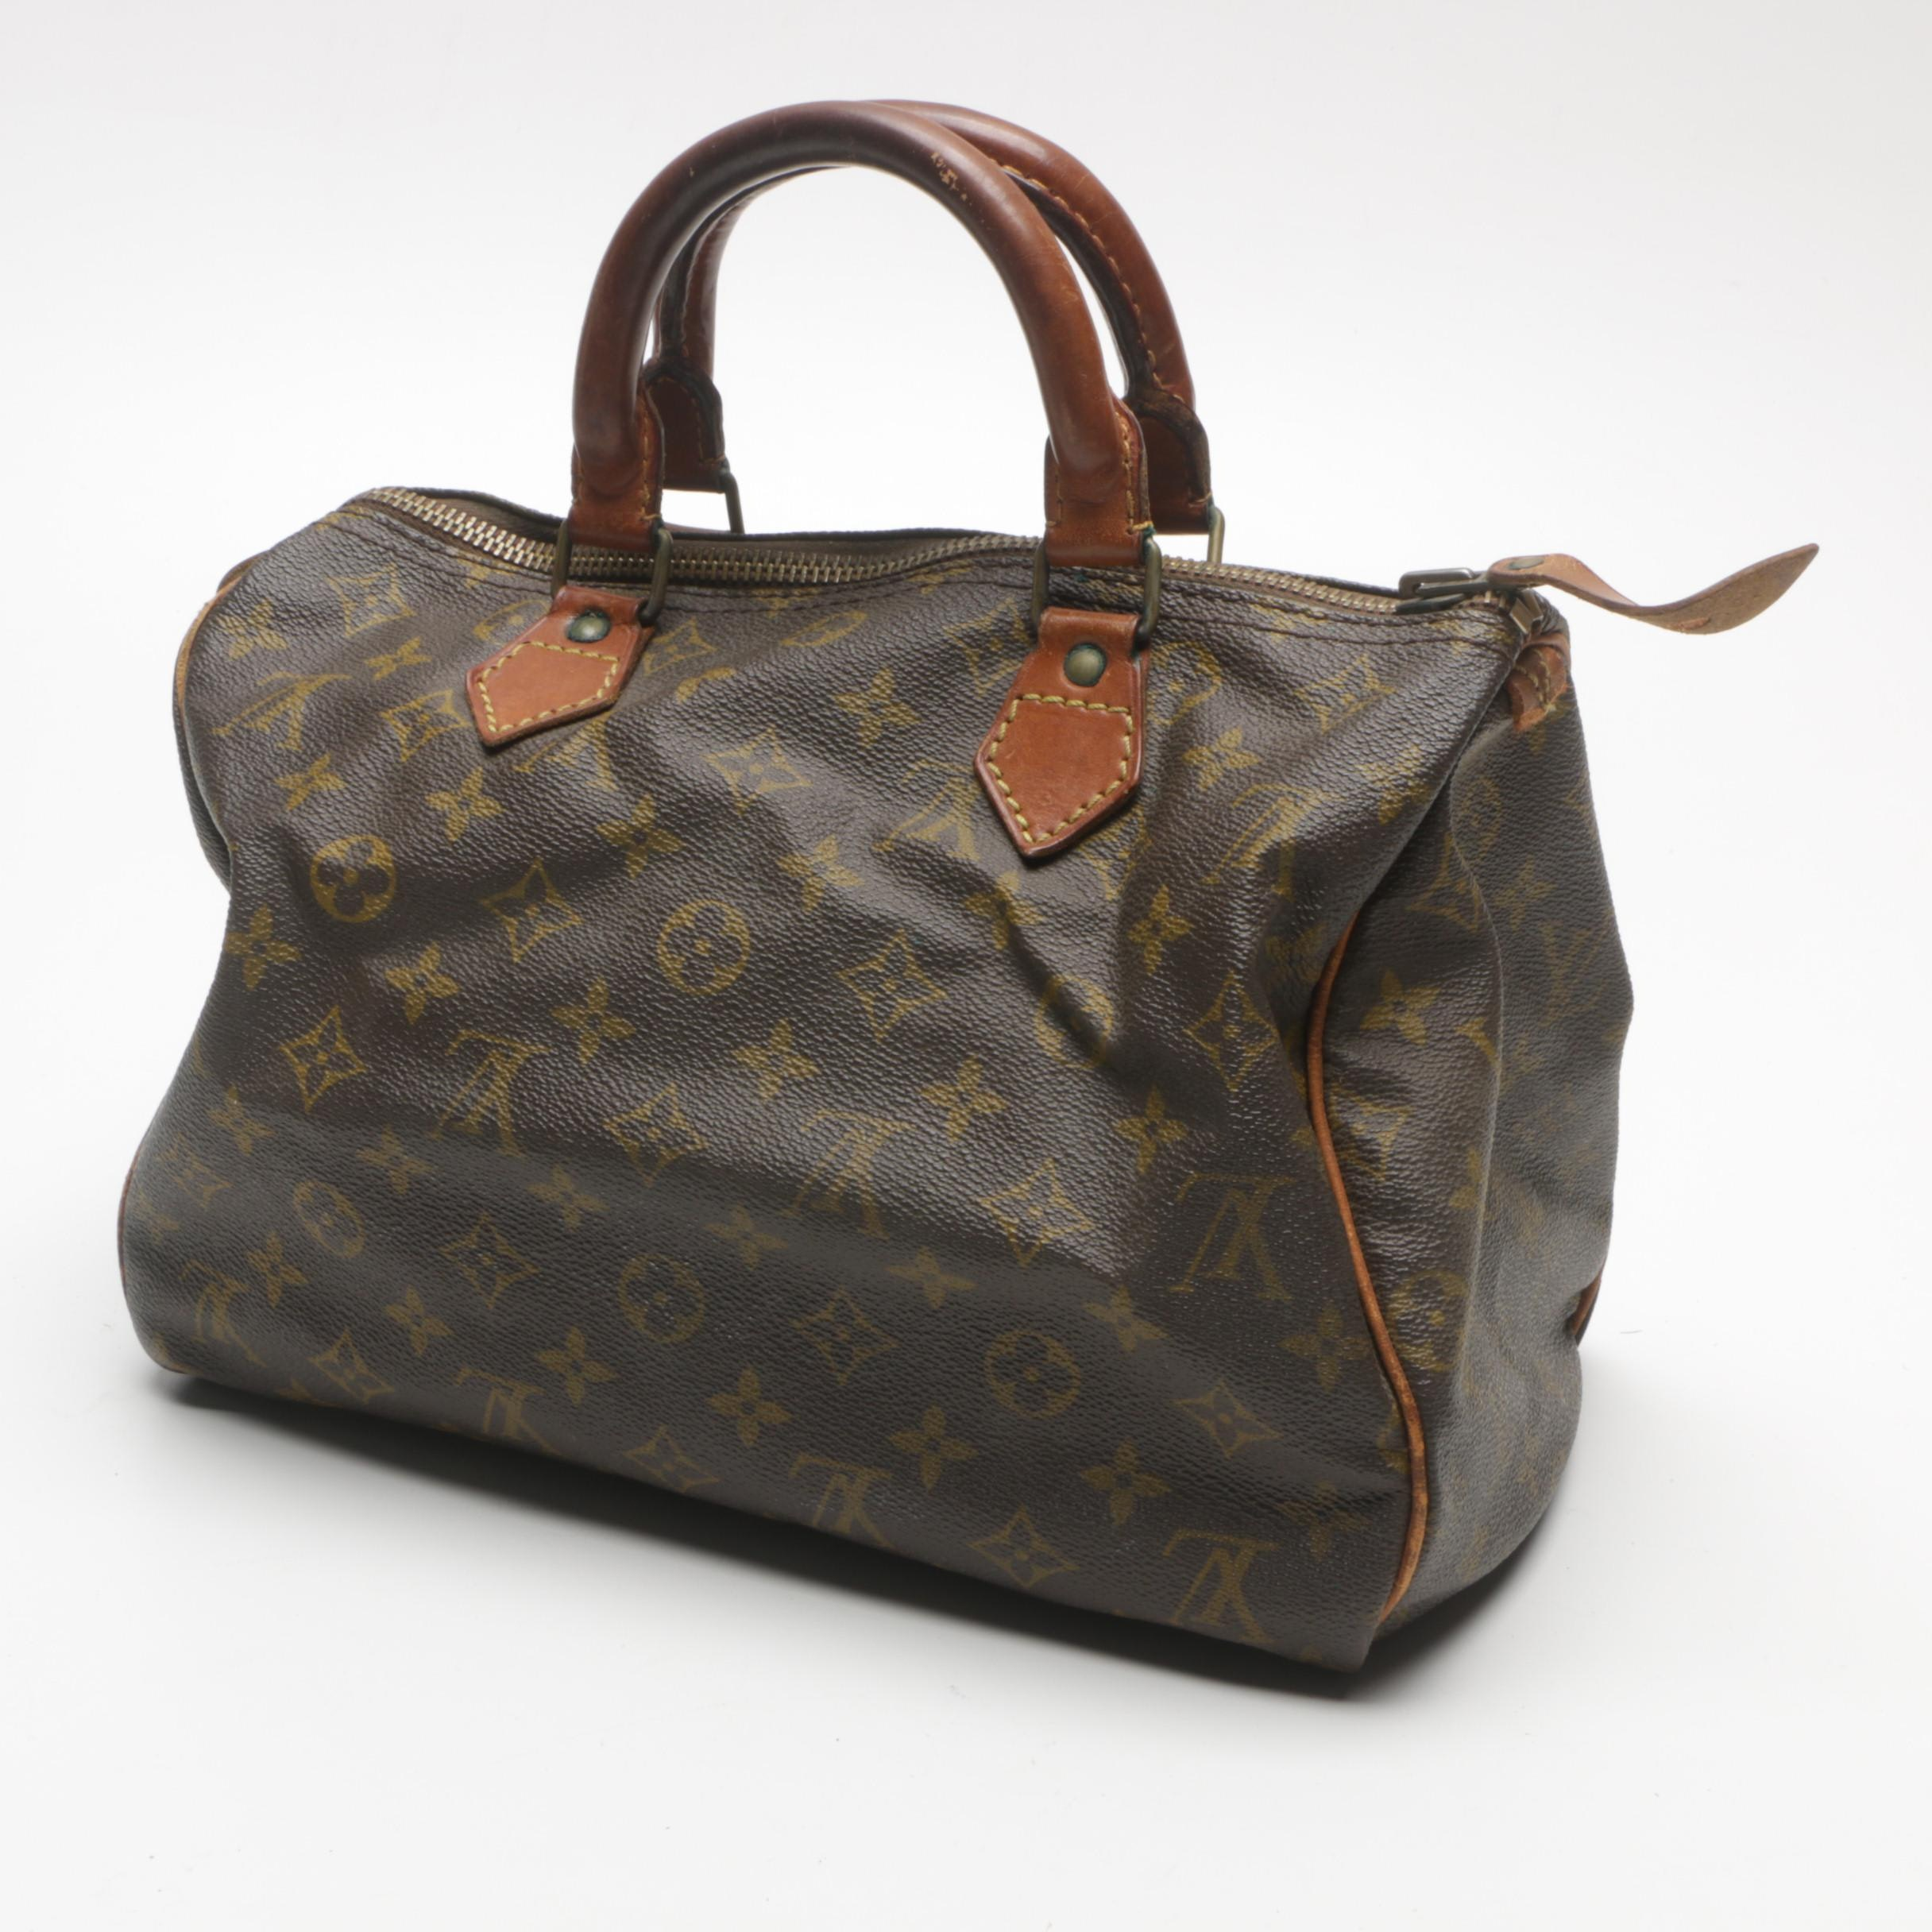 Louis Vuitton Speedy Leather and Canvas Satchel